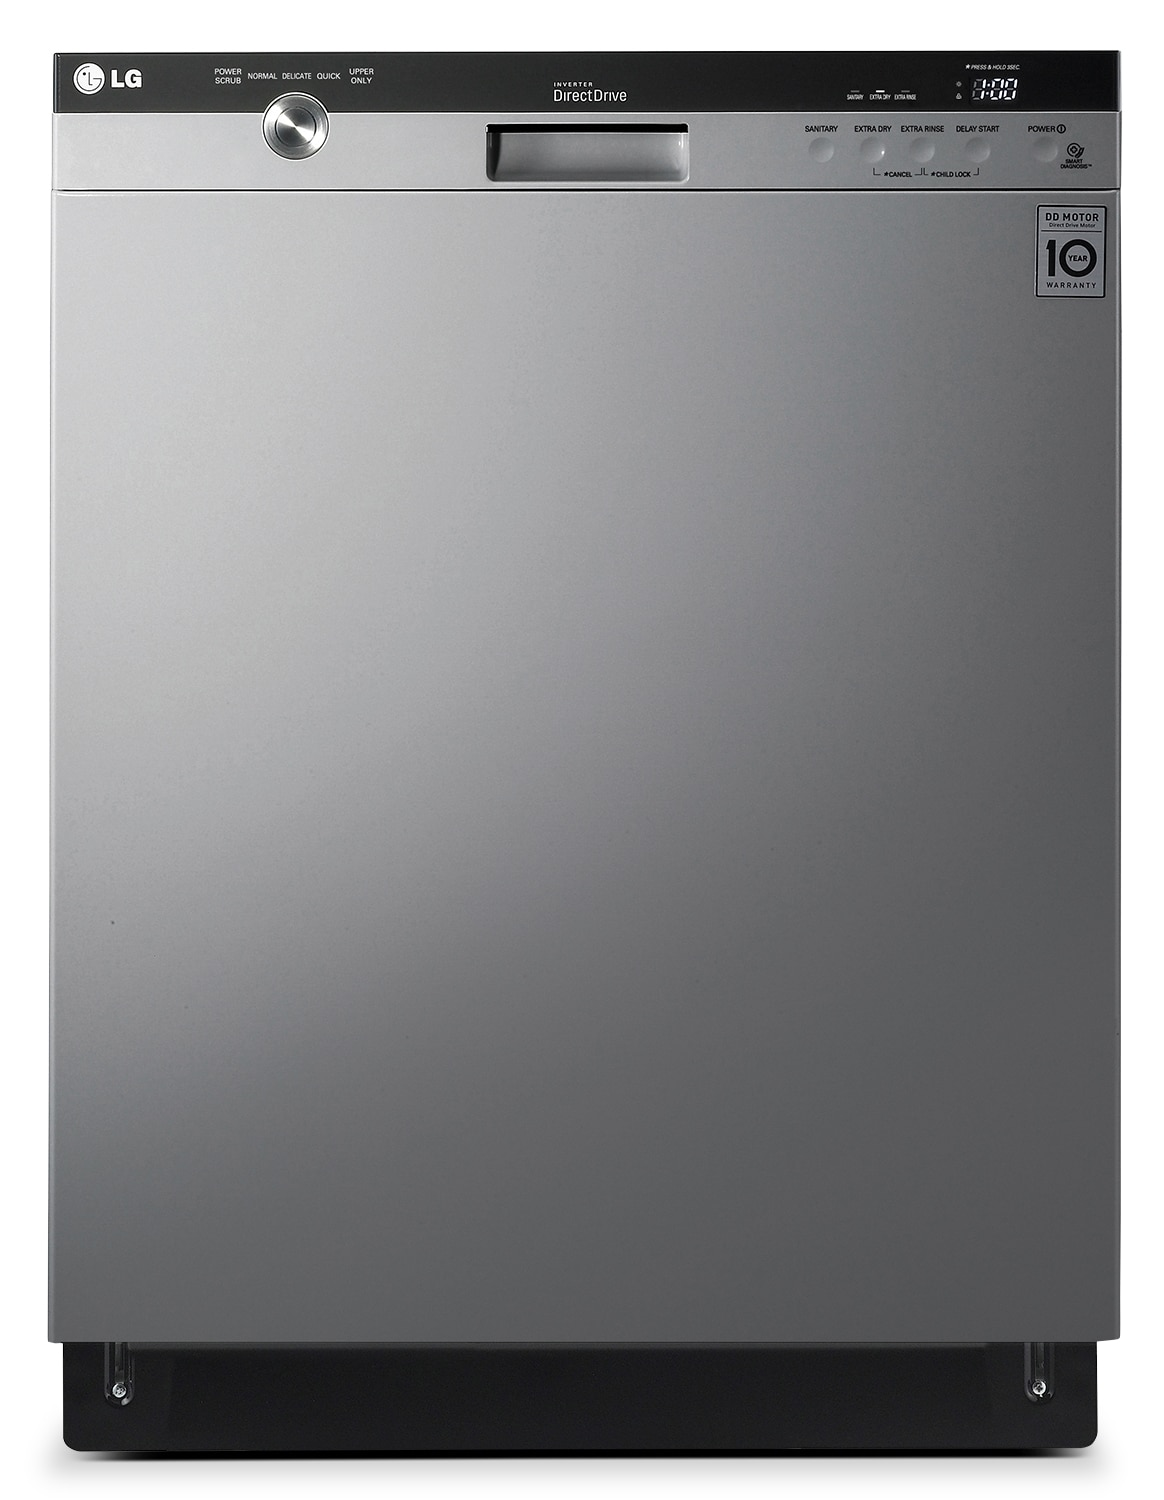 "LG Appliances Stainless Steel 24"" Dishwasher - LDS5540ST"